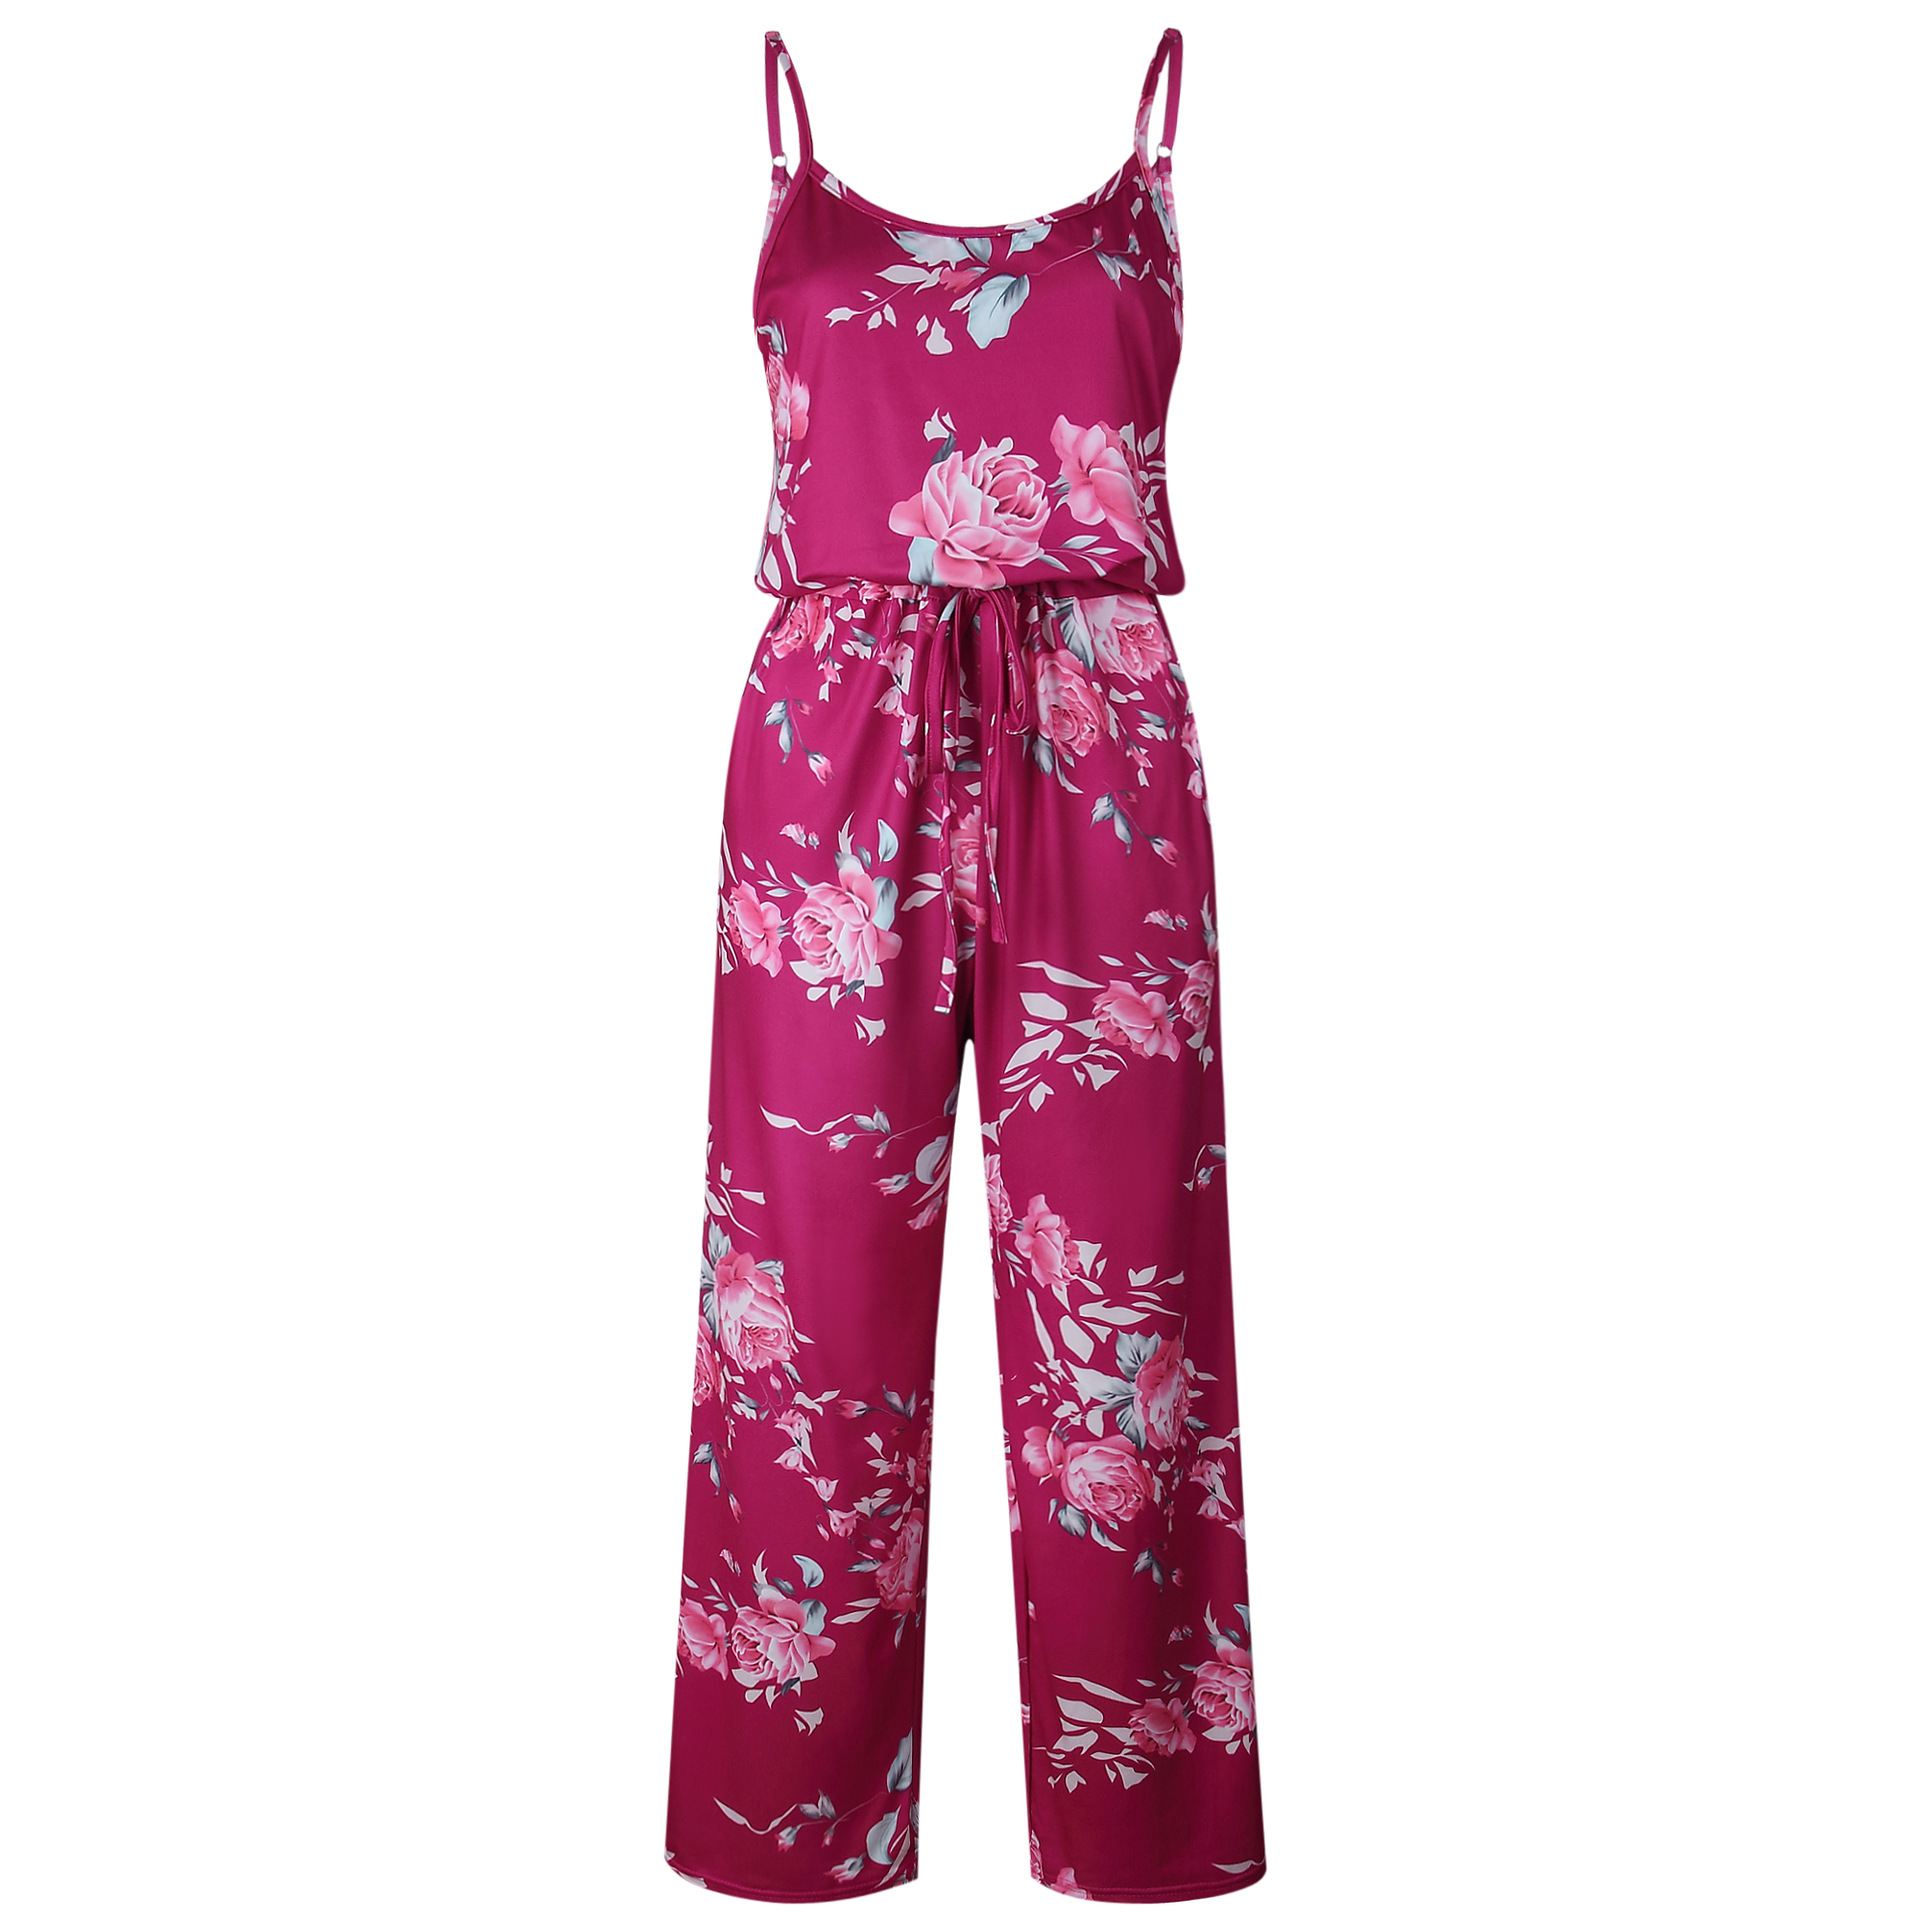 Spaghetti Strap Jumpsuit Women 2018 Summer Long Pants Floral Print Rompers Beach Casual Jumpsuits Sleeveless Sashes Playsuits 36